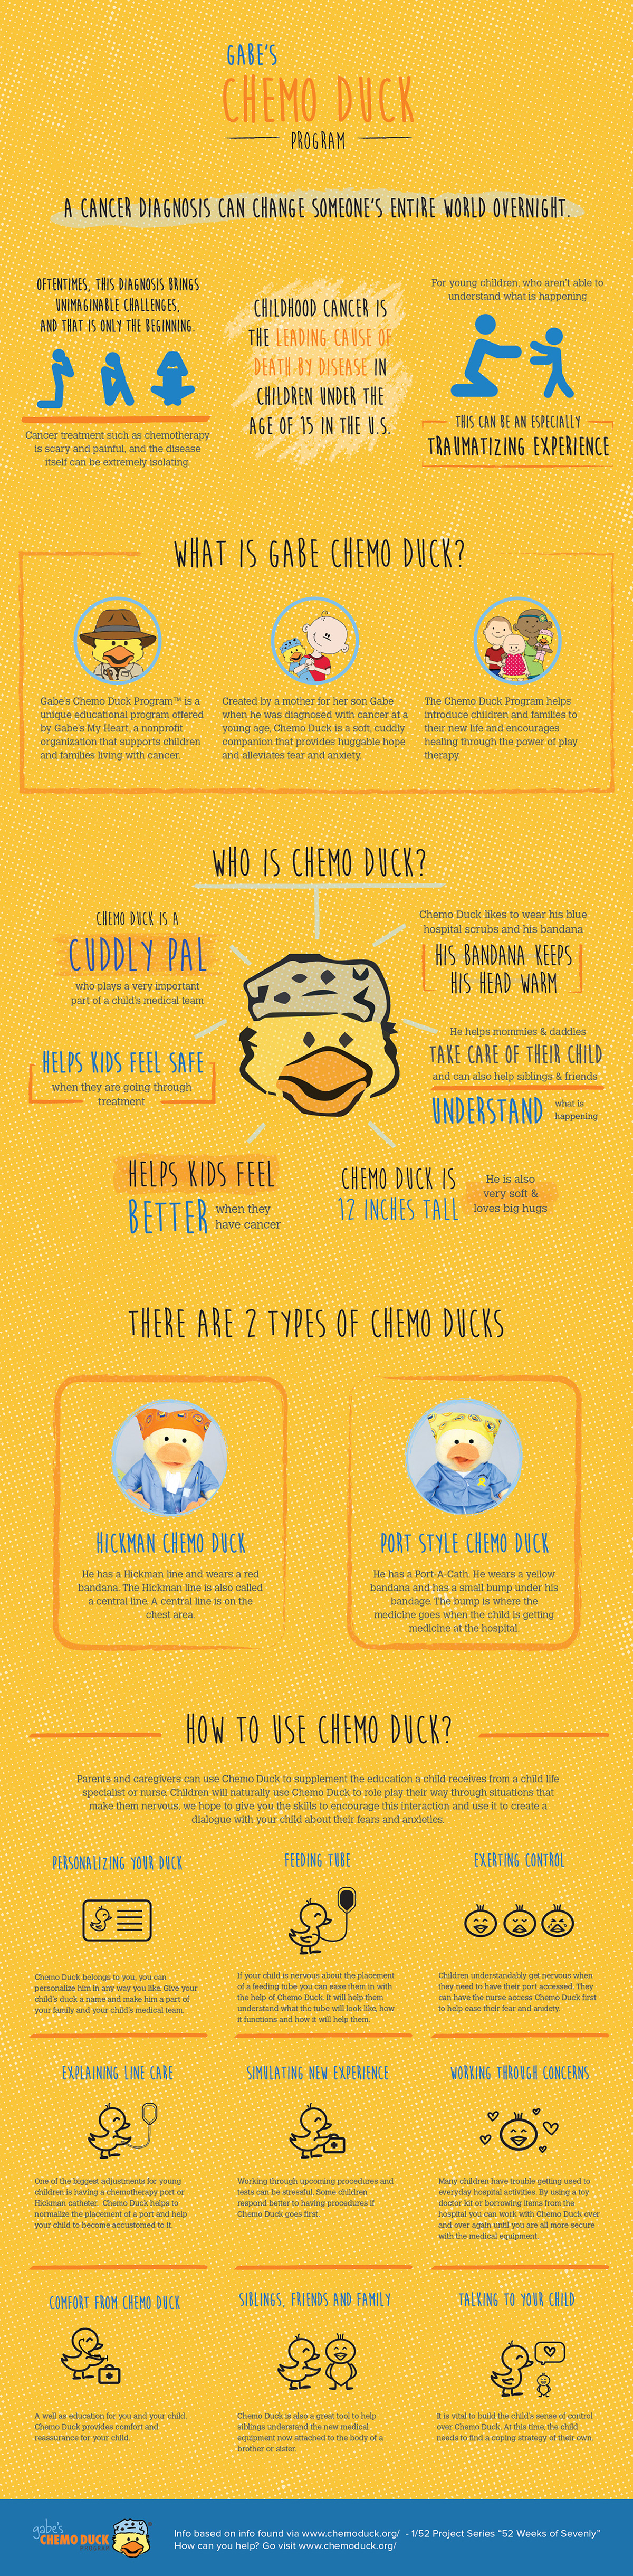 Chemo Duck Infographic On Behance